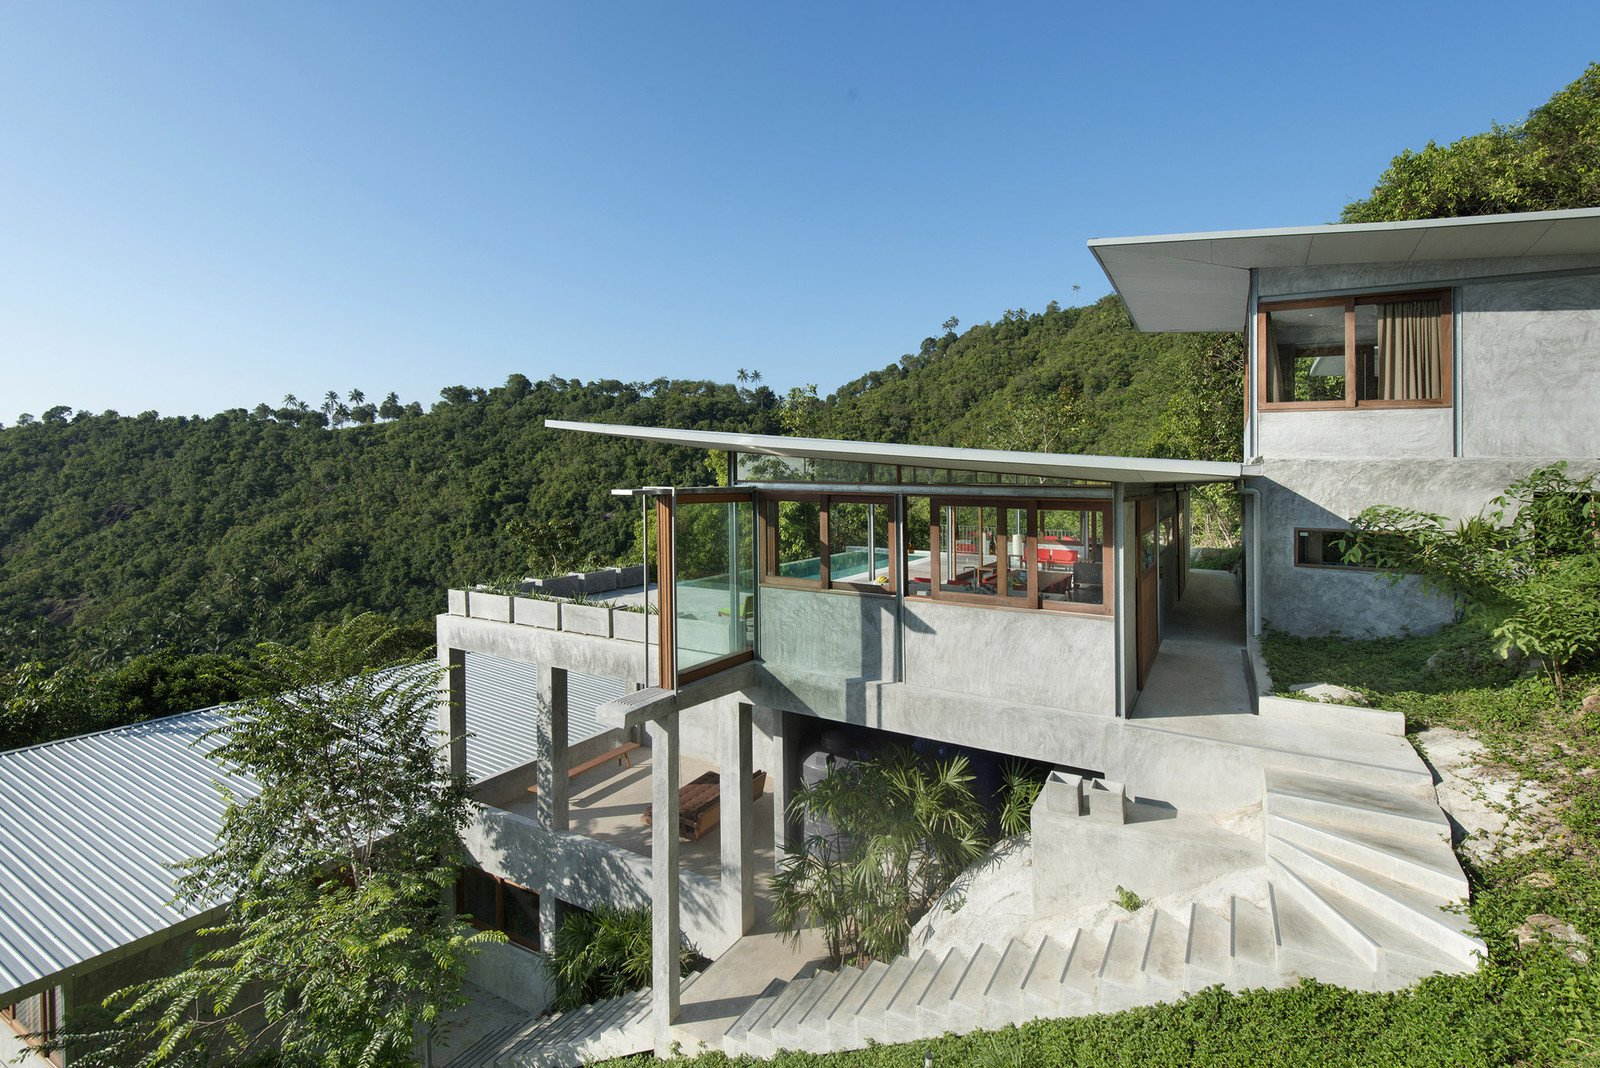 Sofa, Bed, Trees, Metal, Side Yard, Cooktops, Freestanding, Enclosed, One Piece, Outdoor, Slope, Shrubs, Walkways, and Grass  Best Outdoor One Piece Cooktops Photos from Take a Trip to This Photographer-Designed Concrete Home in Thailand